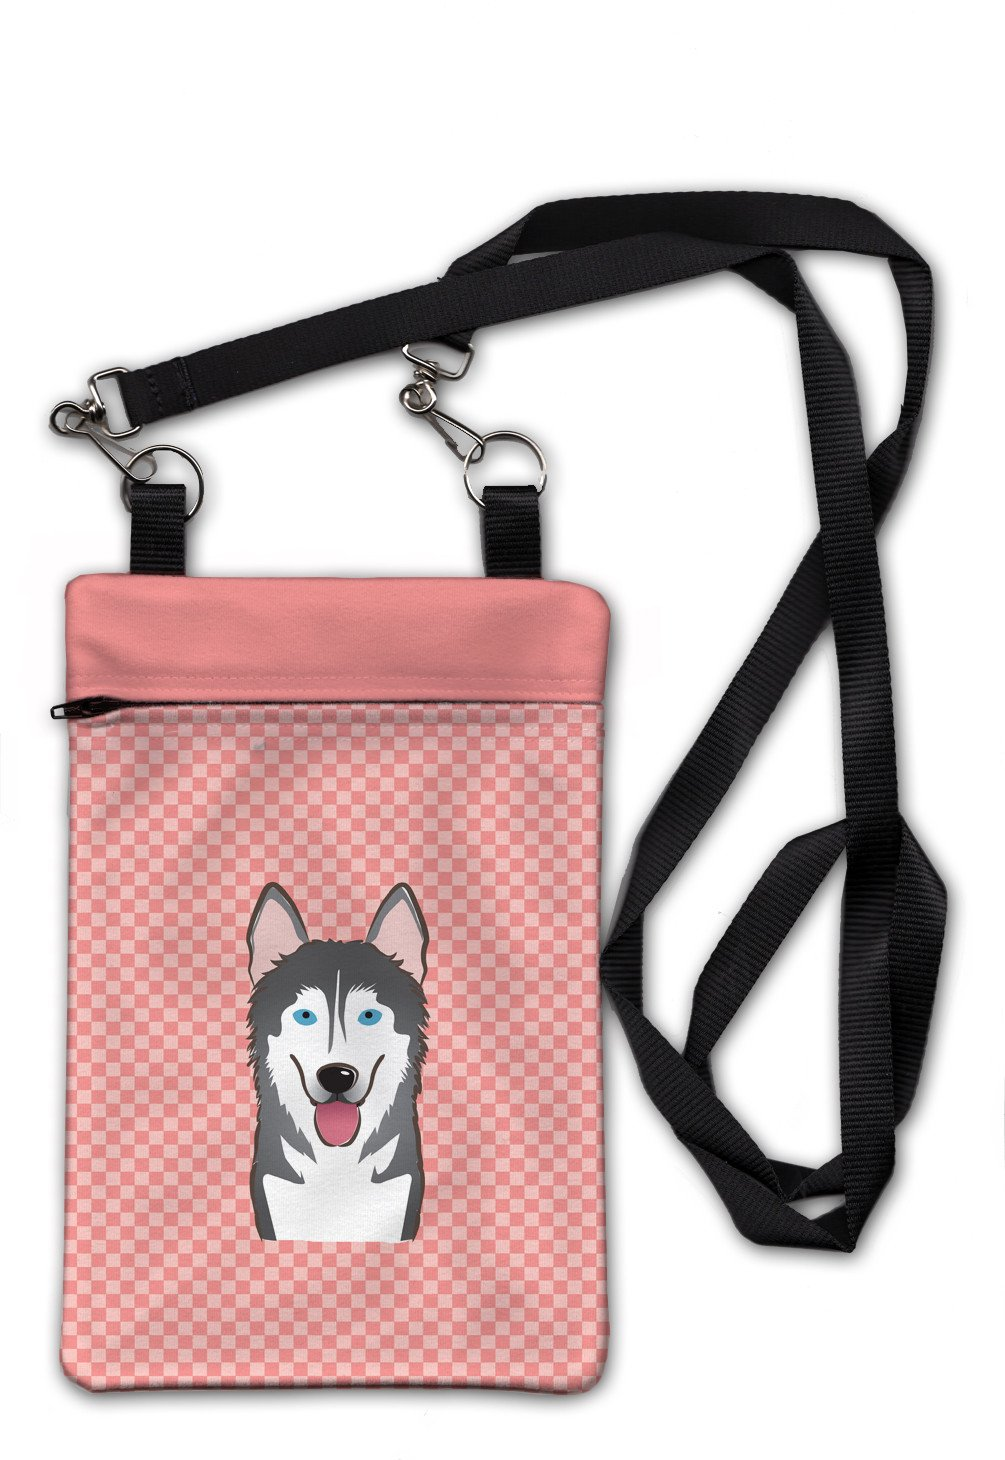 Checkerboard Pink Alaskan Malamute Crossbody Bag Purse BB1218OBDY by Caroline's Treasures